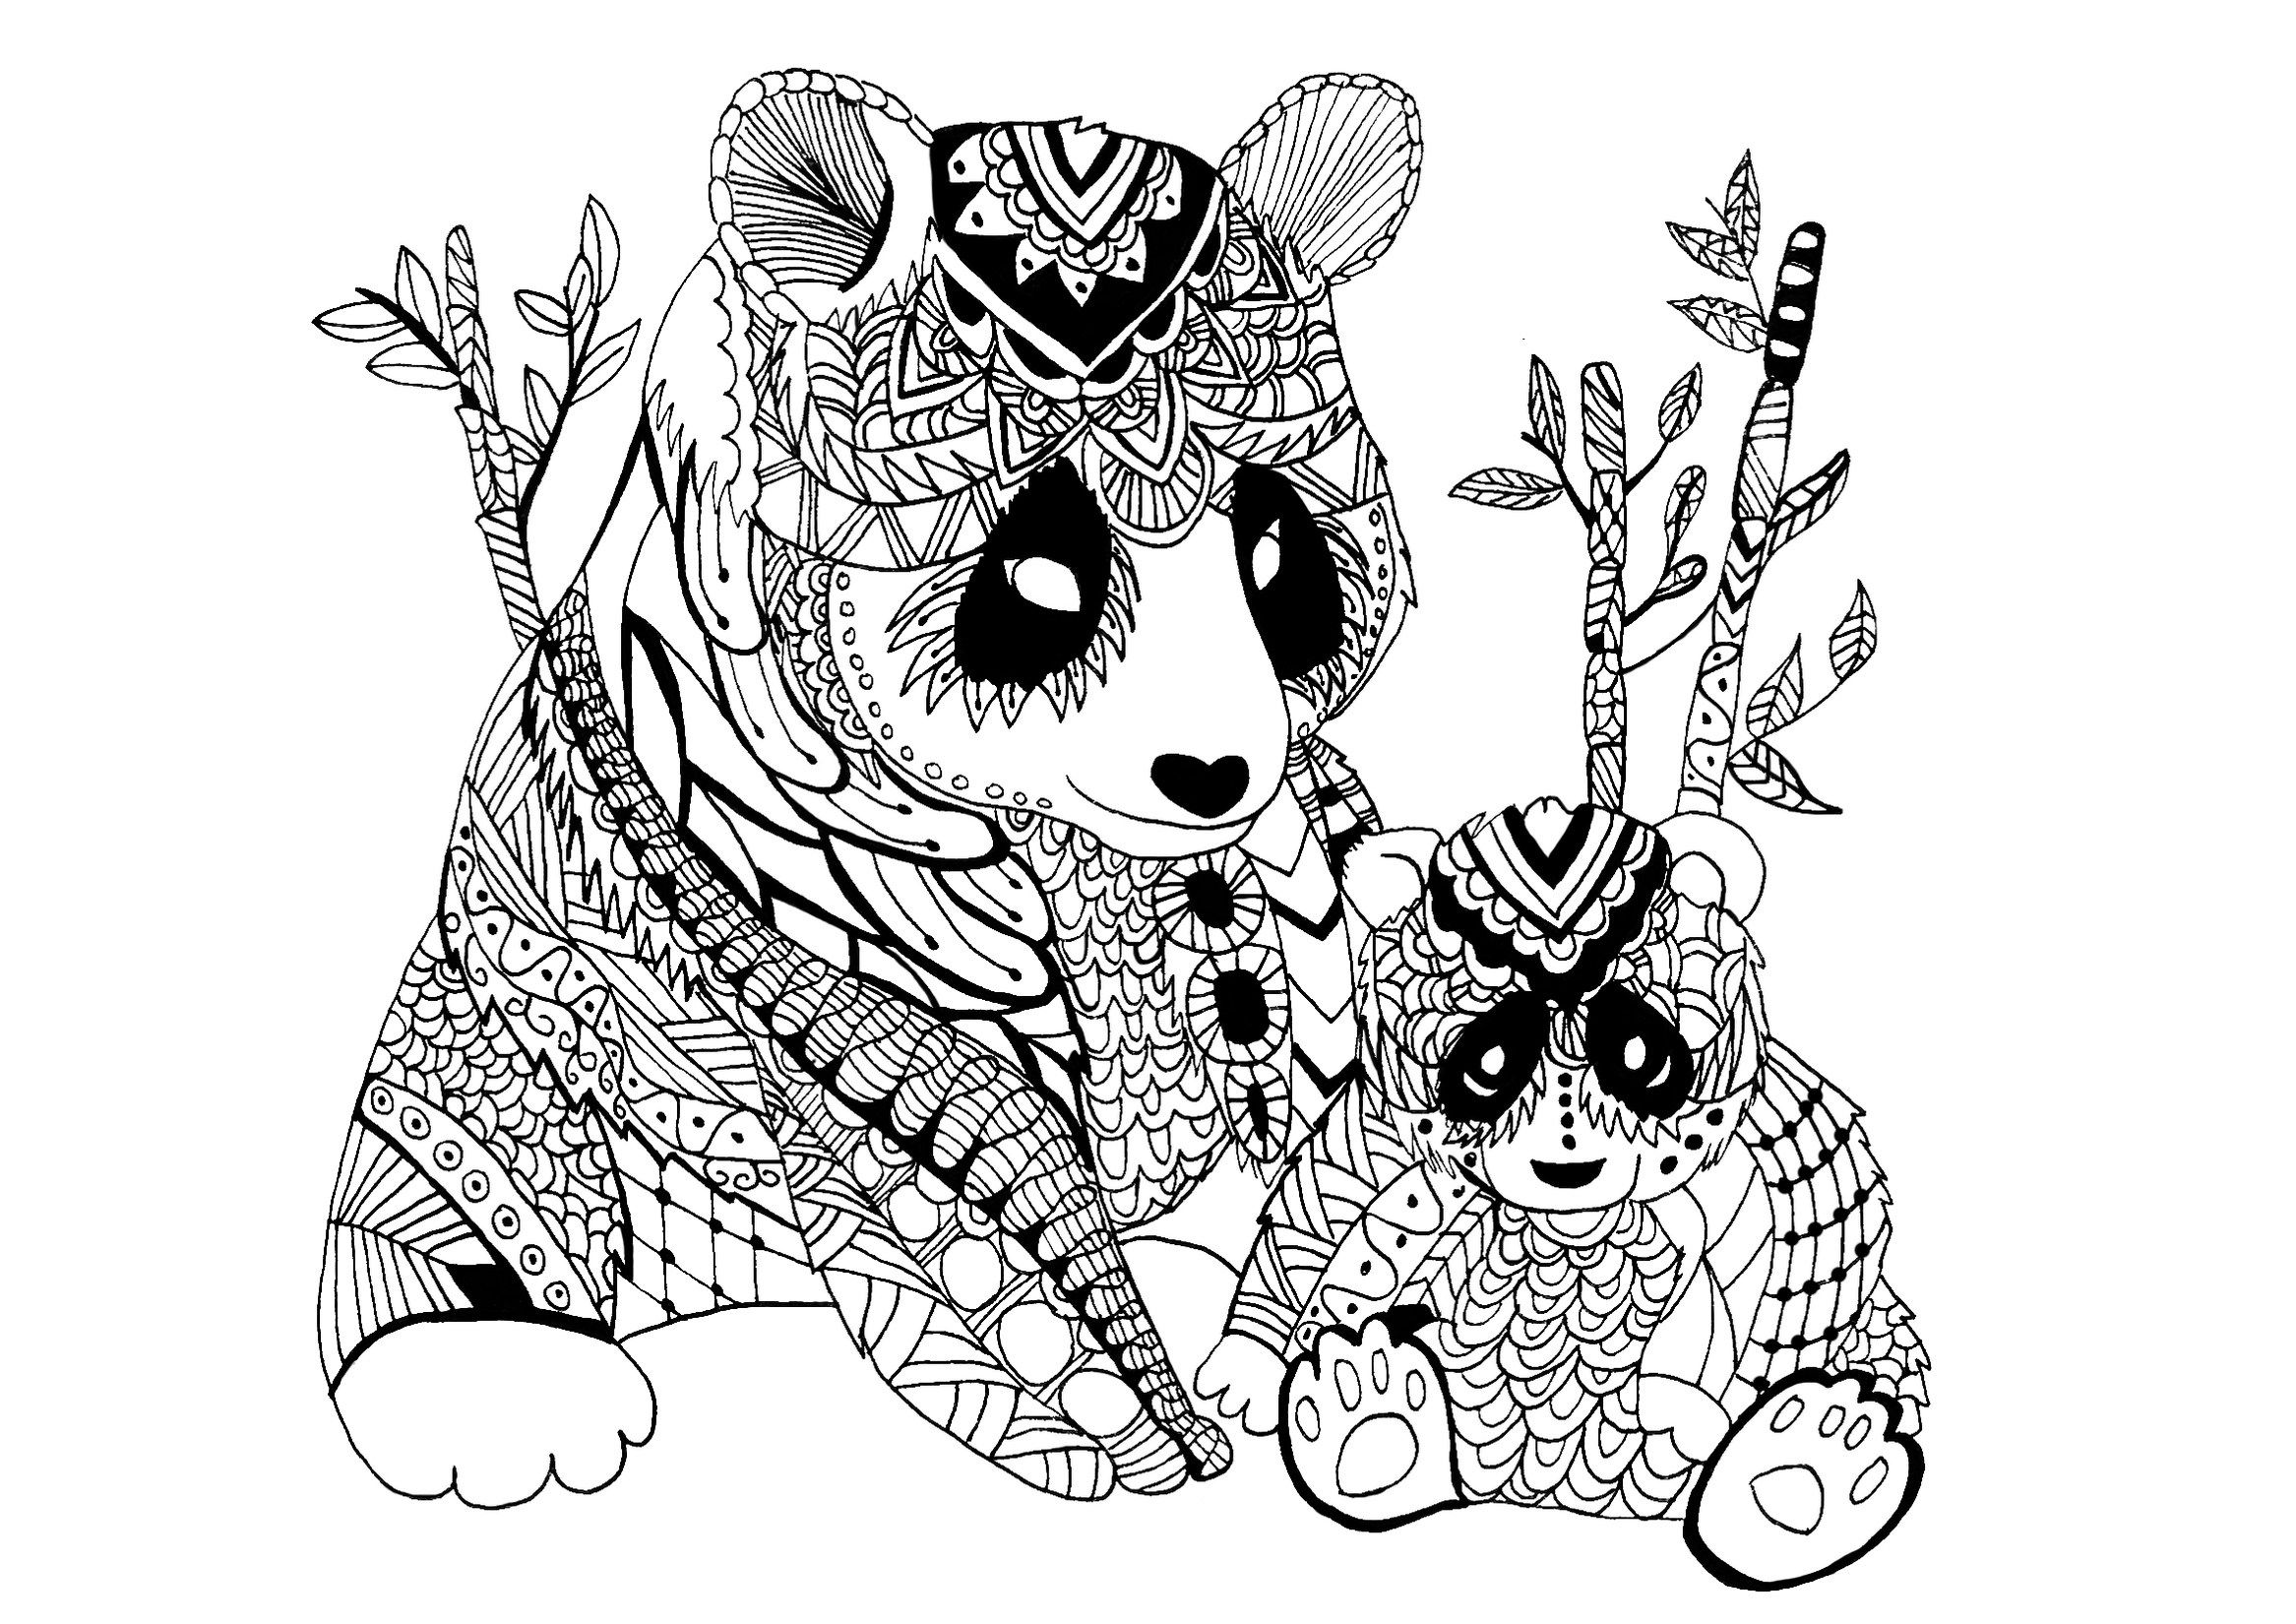 Panda And Baby Zentangle Coloring Picture Panda Coloring Pages Animal Coloring Pages Bear Coloring Pages